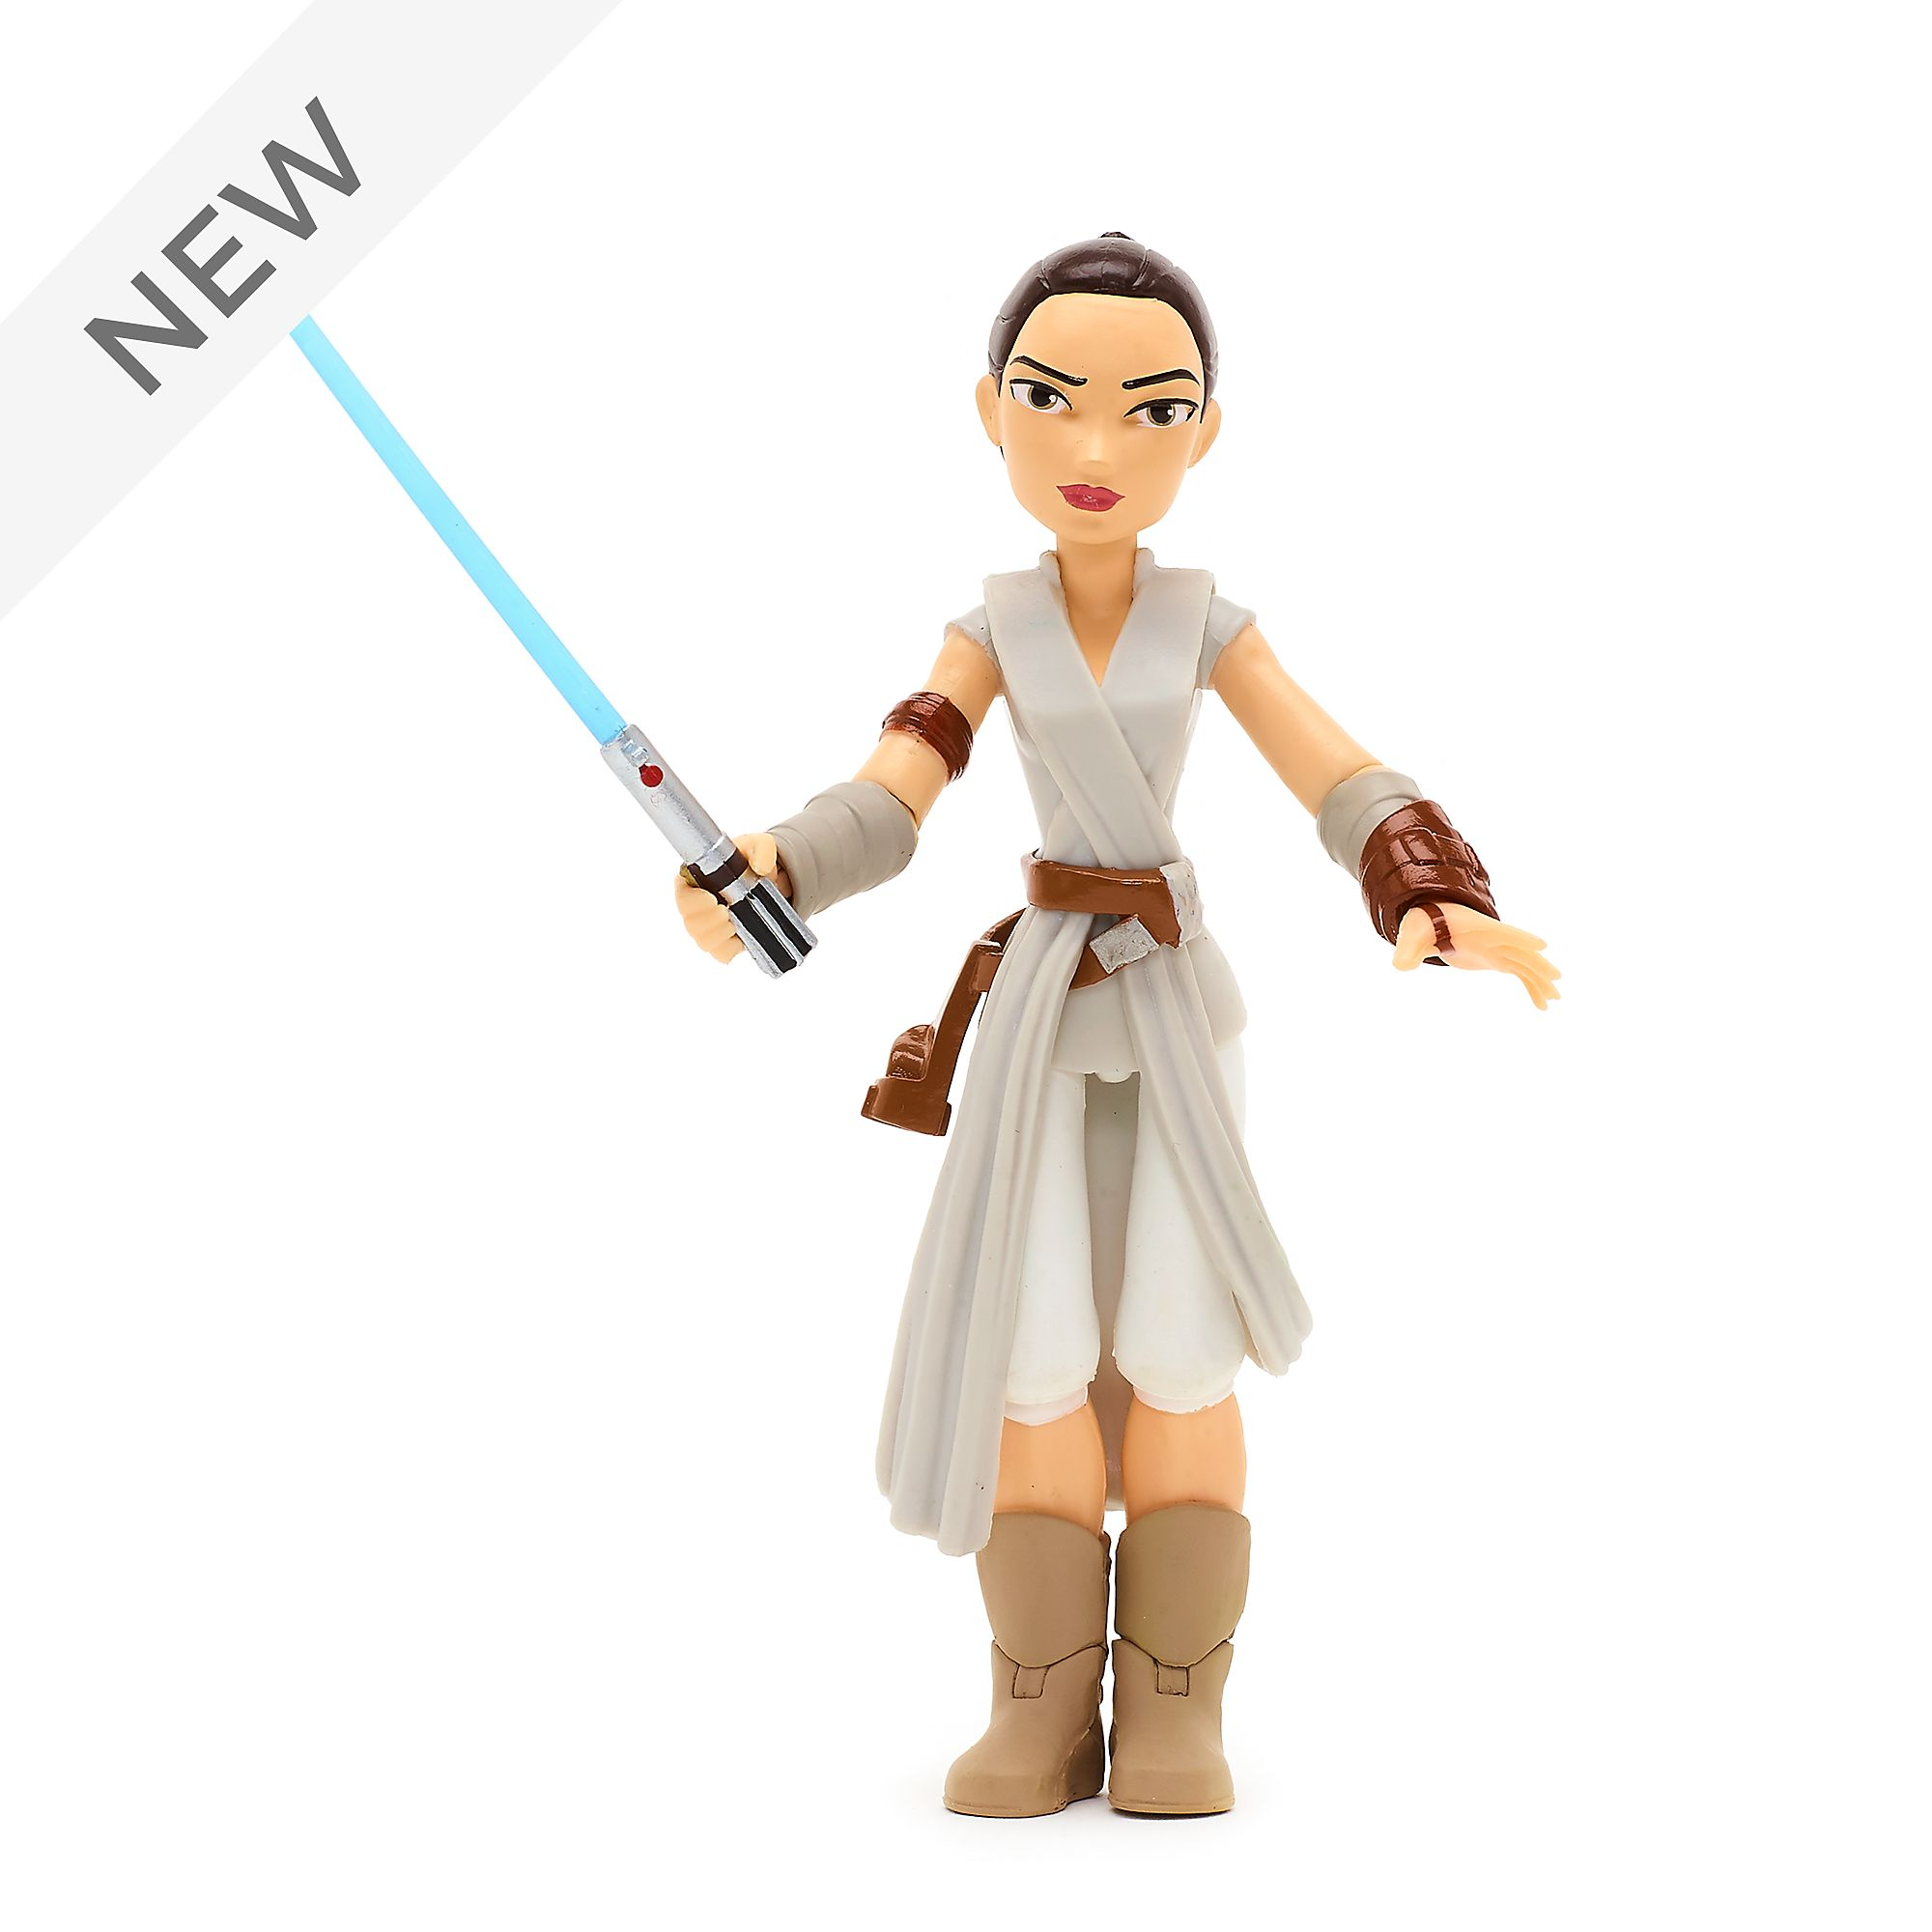 The Rise of Skywalker Star Wars The Rise of Skywalker Toybox Rey Action Figure